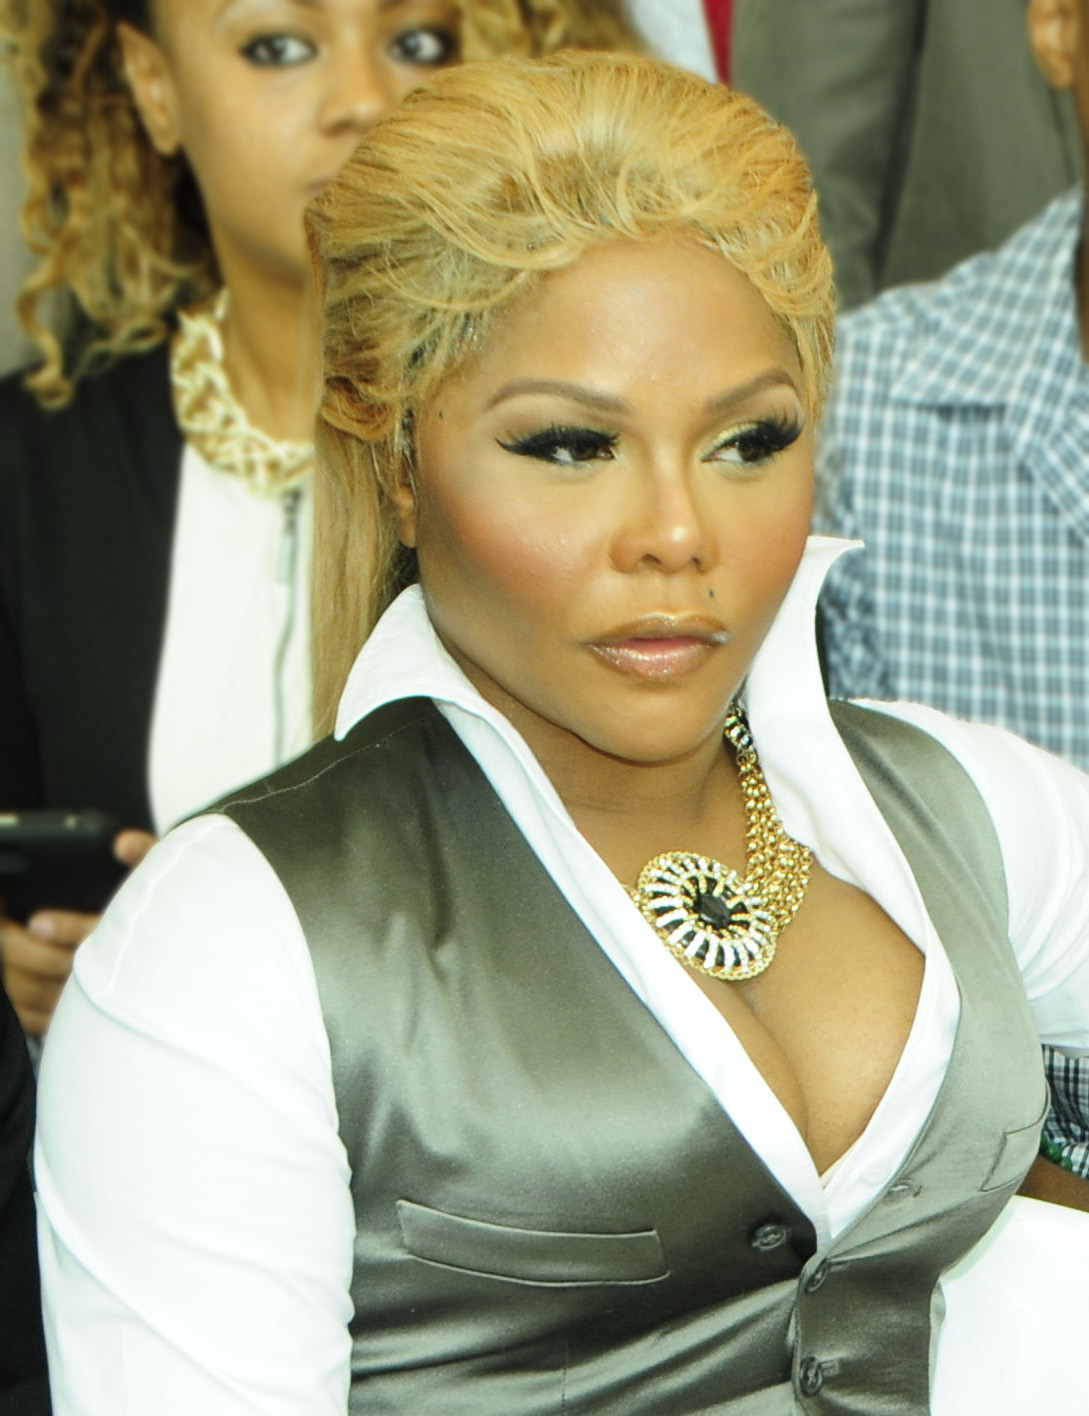 Lil_Kim_Mercedes_Benz_Fashion_Week_2012_(modified).jpg (1089×1416)